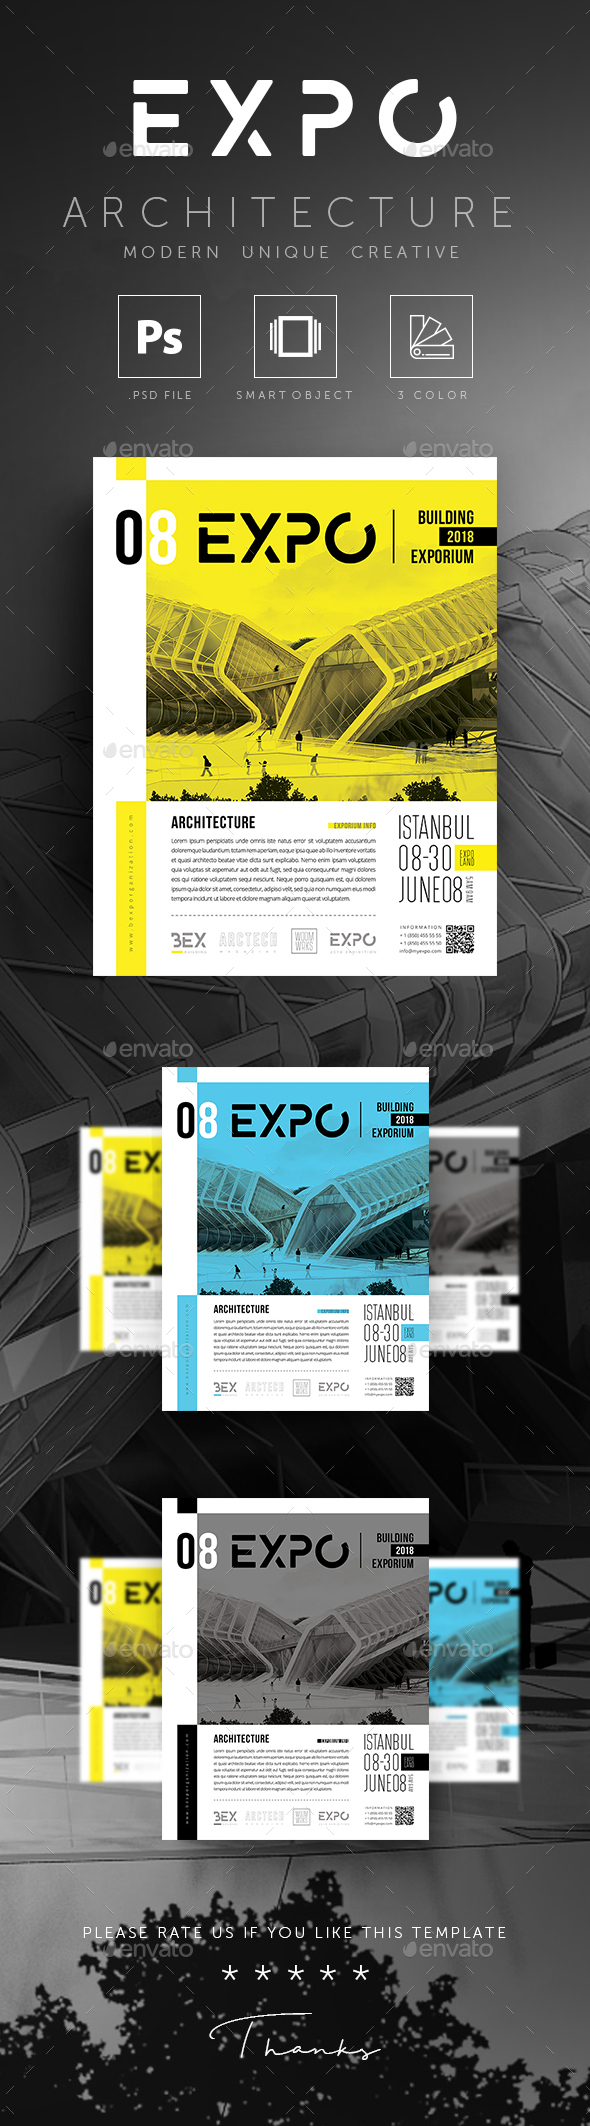 GraphicRiver EXPO Exhibition Architecture Building Fair Poster Flyer 20618835